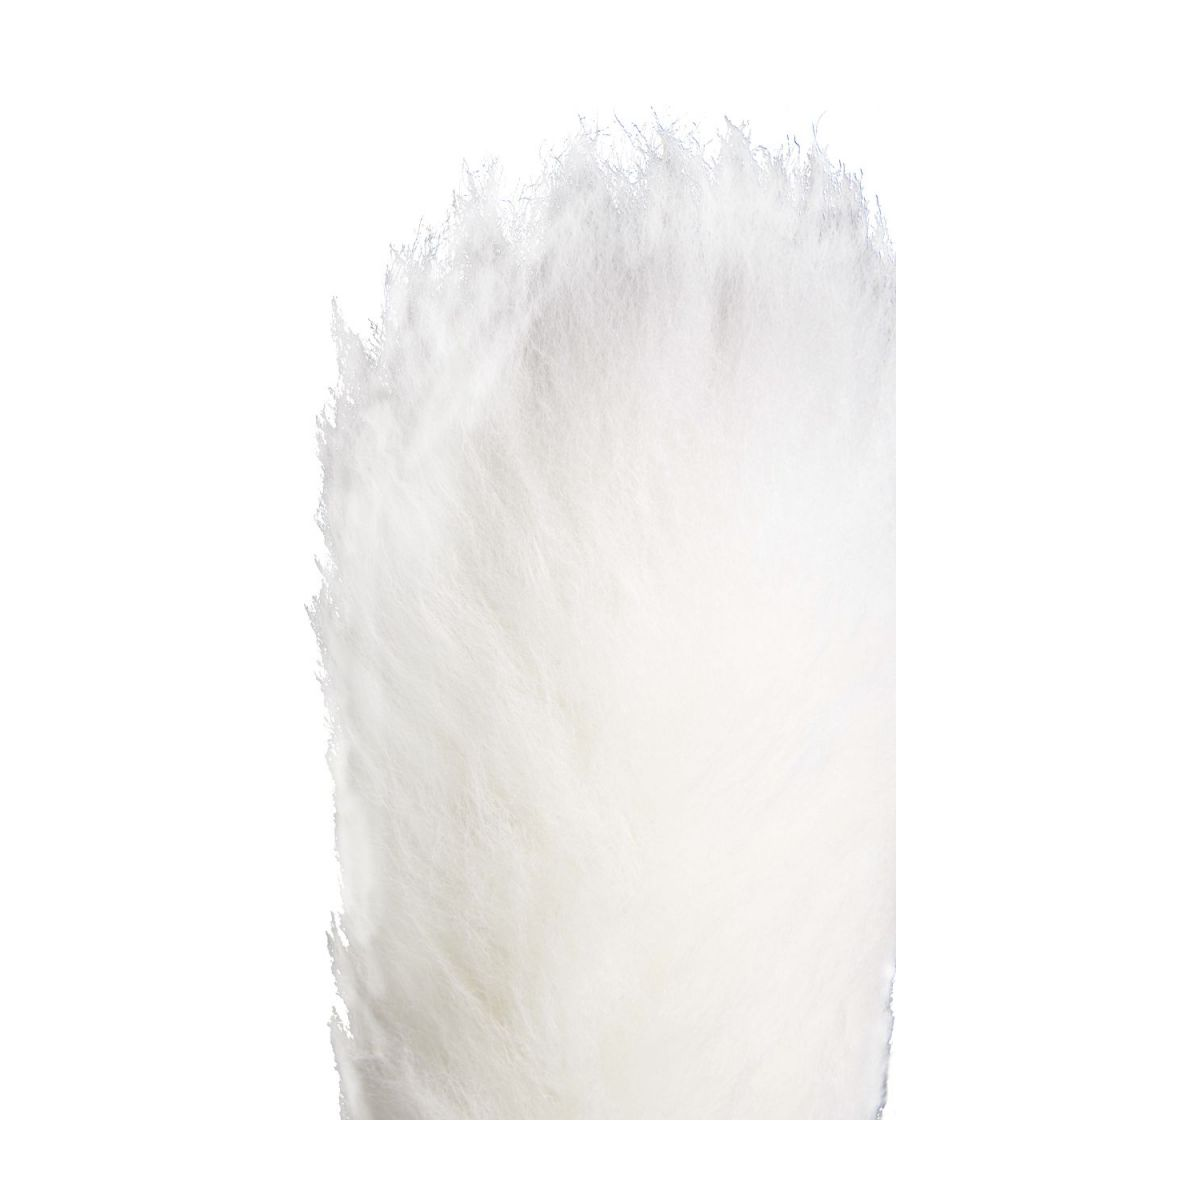 Feather duster made of ostrich feathers n°4